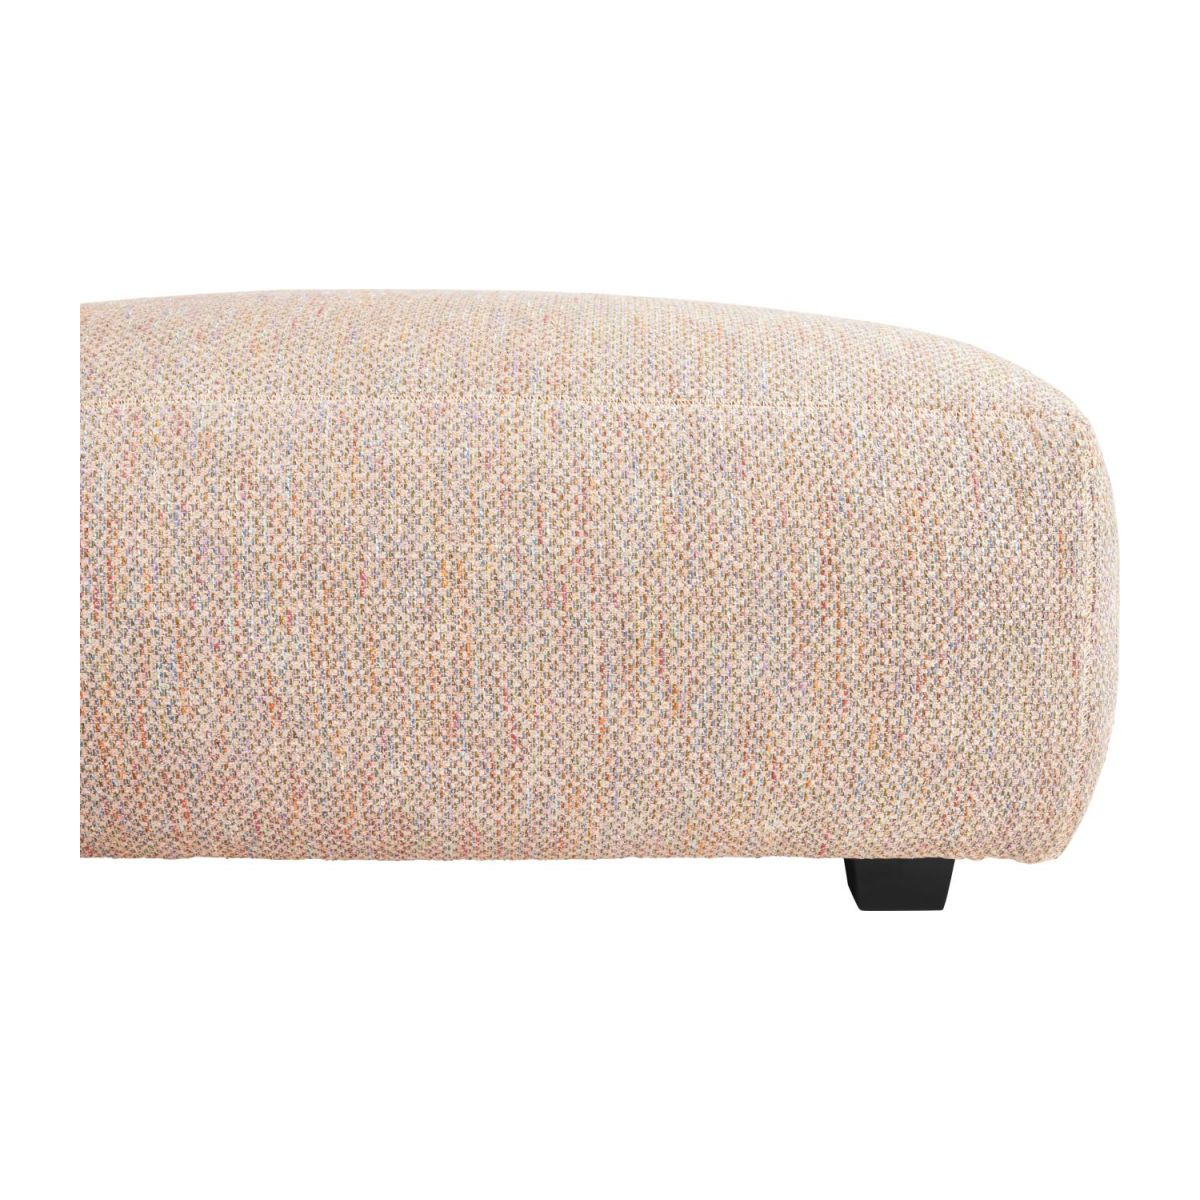 Footstool in Bellagio fabric, passion orange n°5